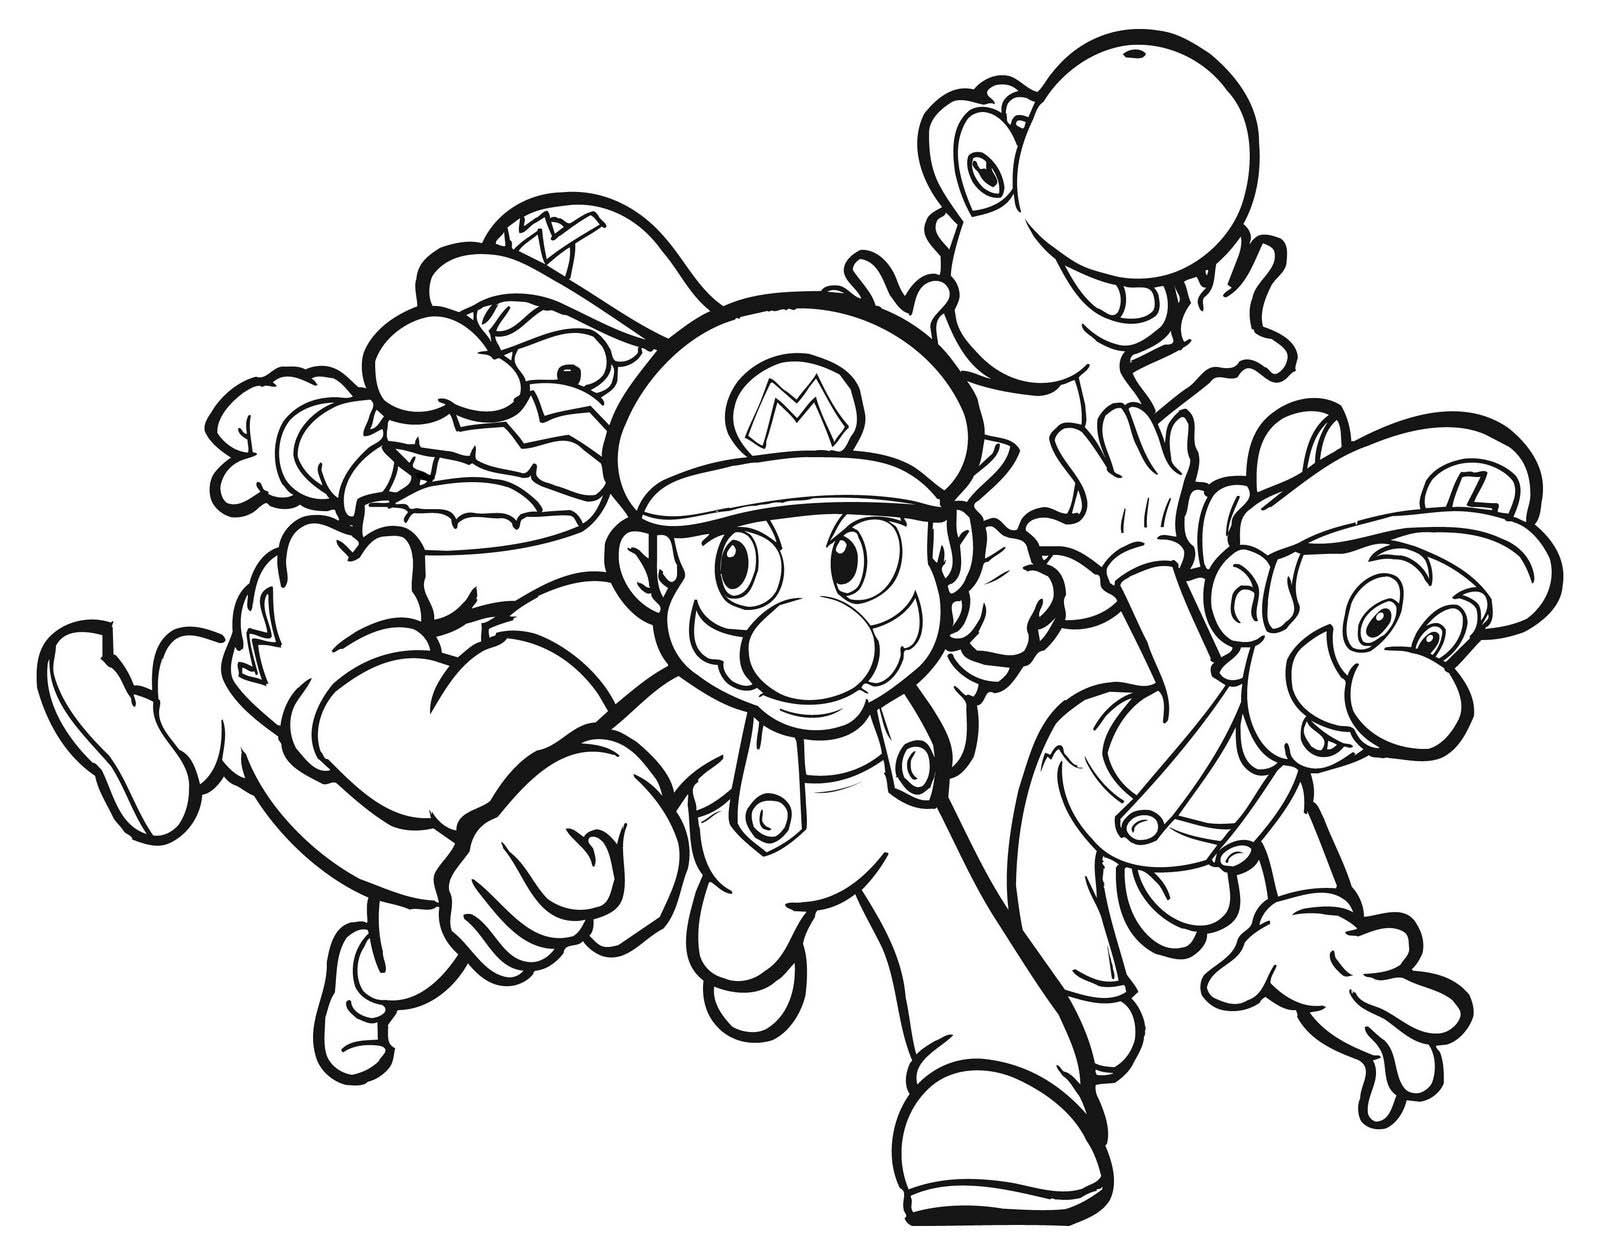 download super mario coloring pages 5 - Mario Kart Coloring Pages